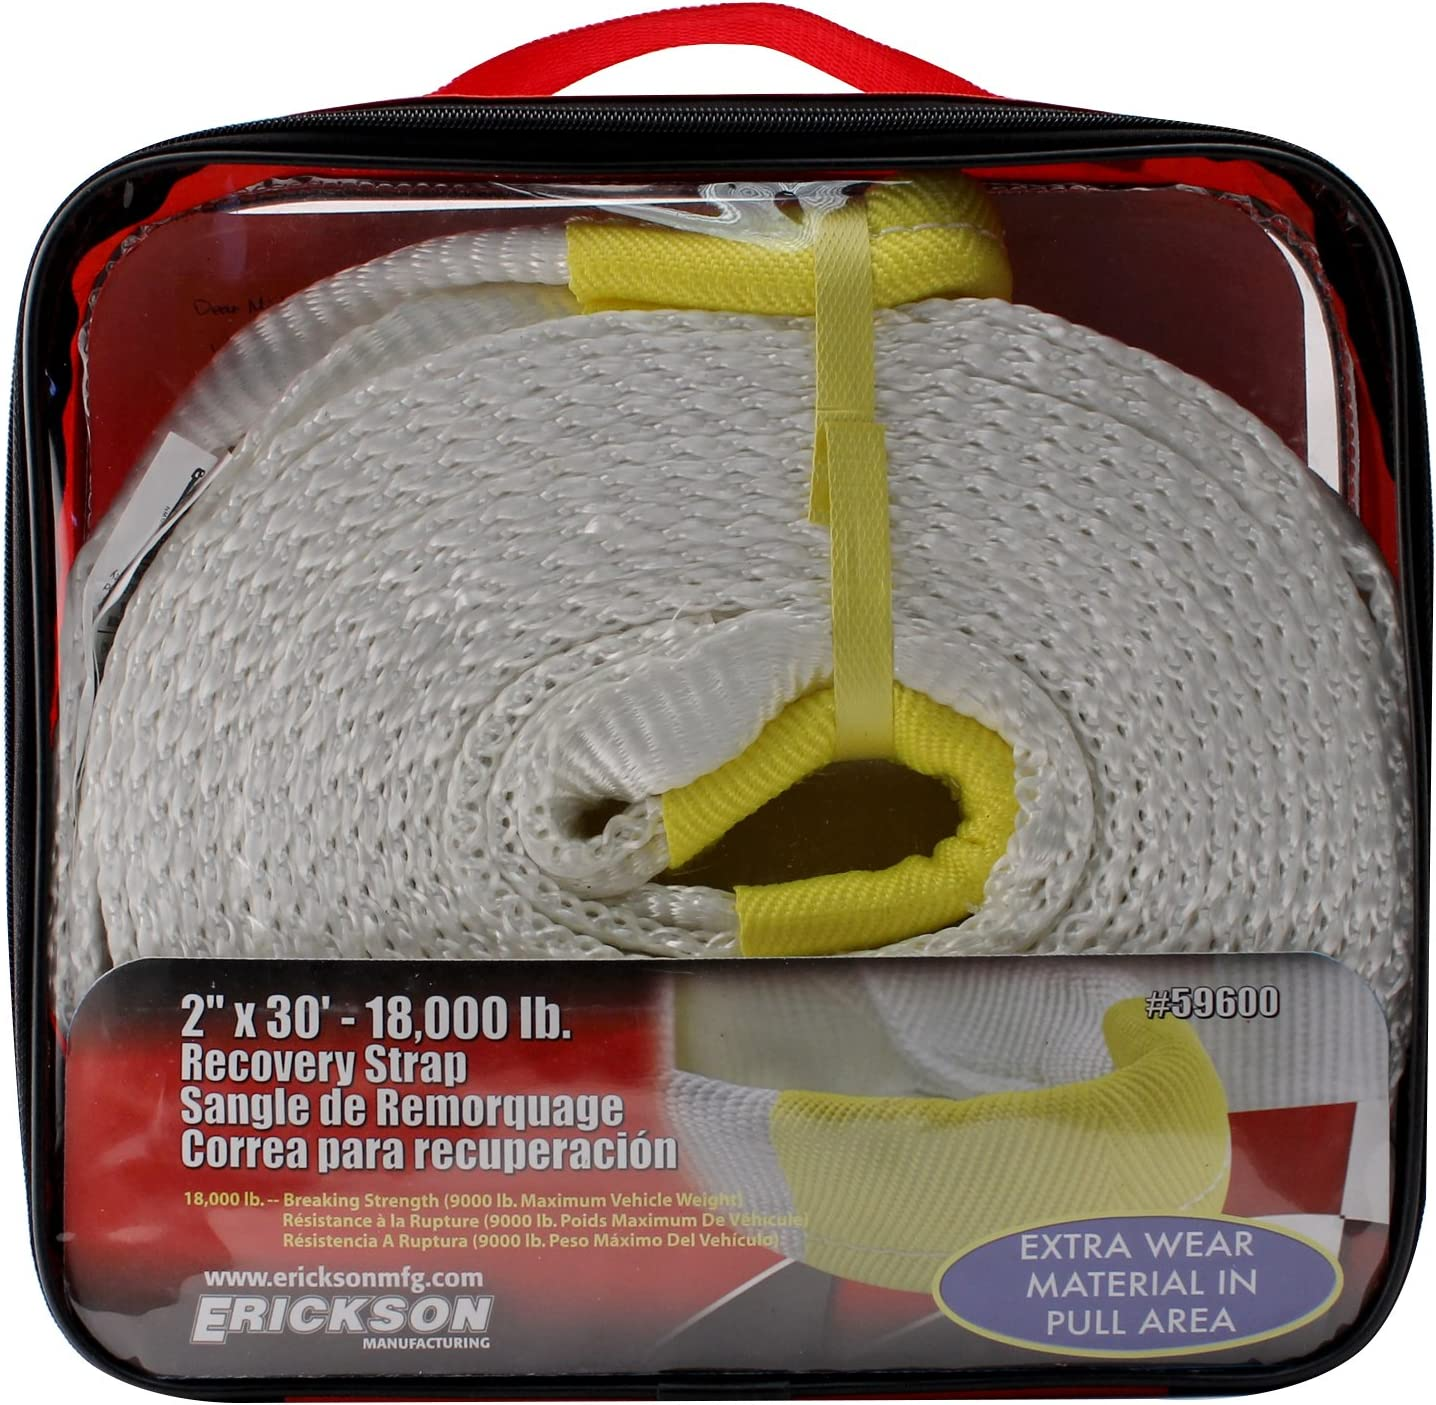 Erickson 59500 White 2 x 20 Recovery Strap 18,000 lbs Breaking Strength 9000 lbs Maximum Vehicle Weight Capacity